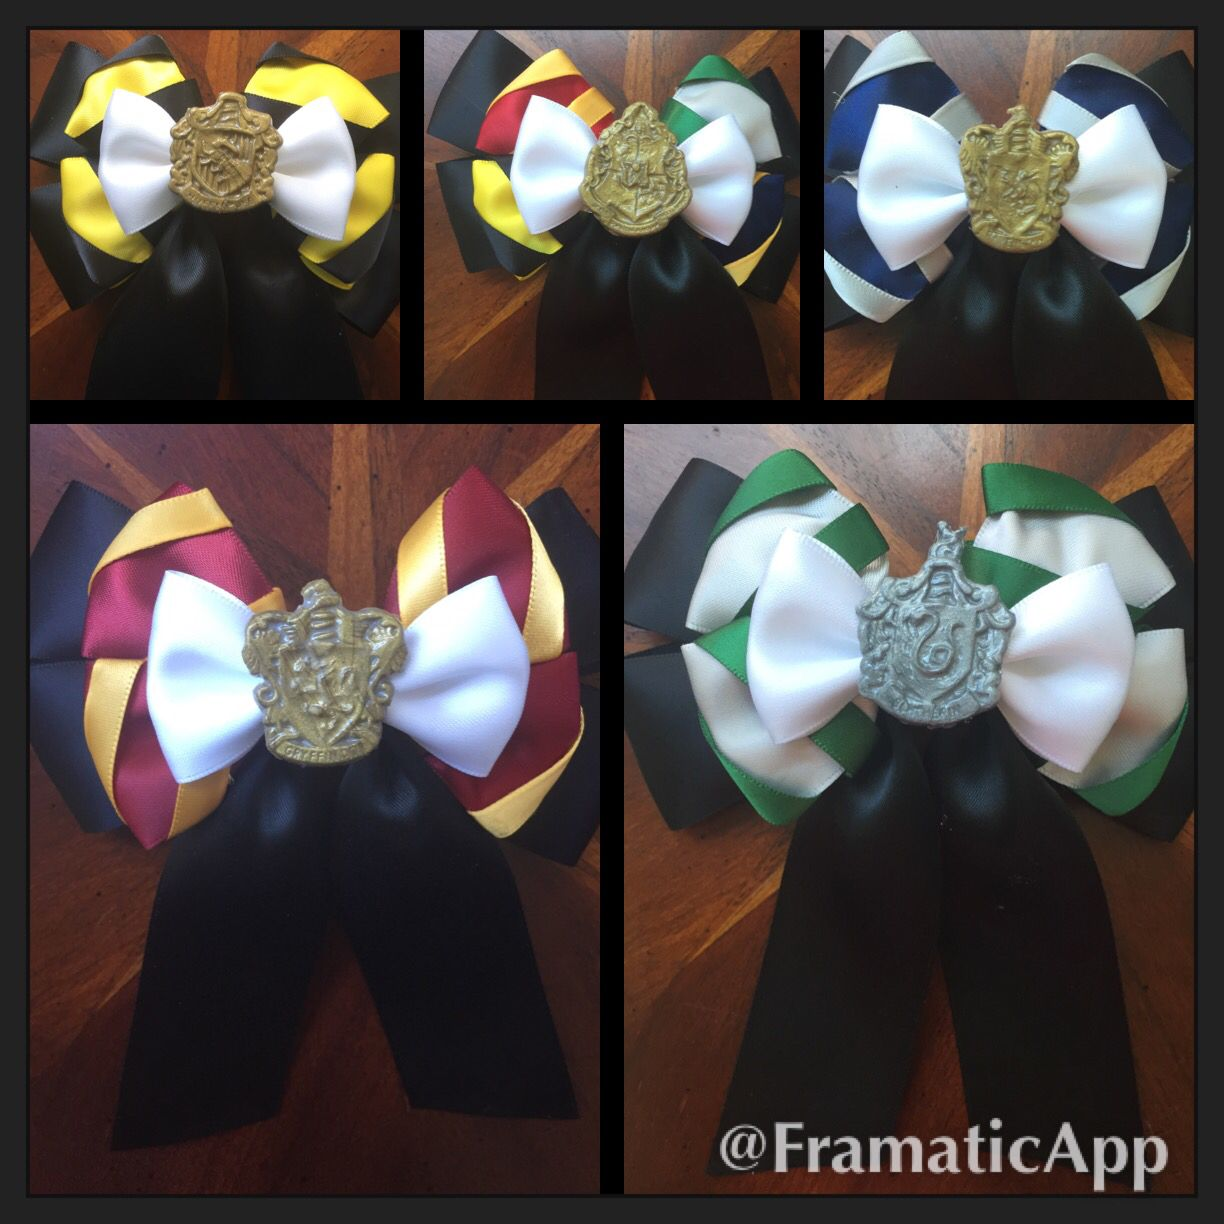 hogwarts school of witch craft and wizardry and house hair bows